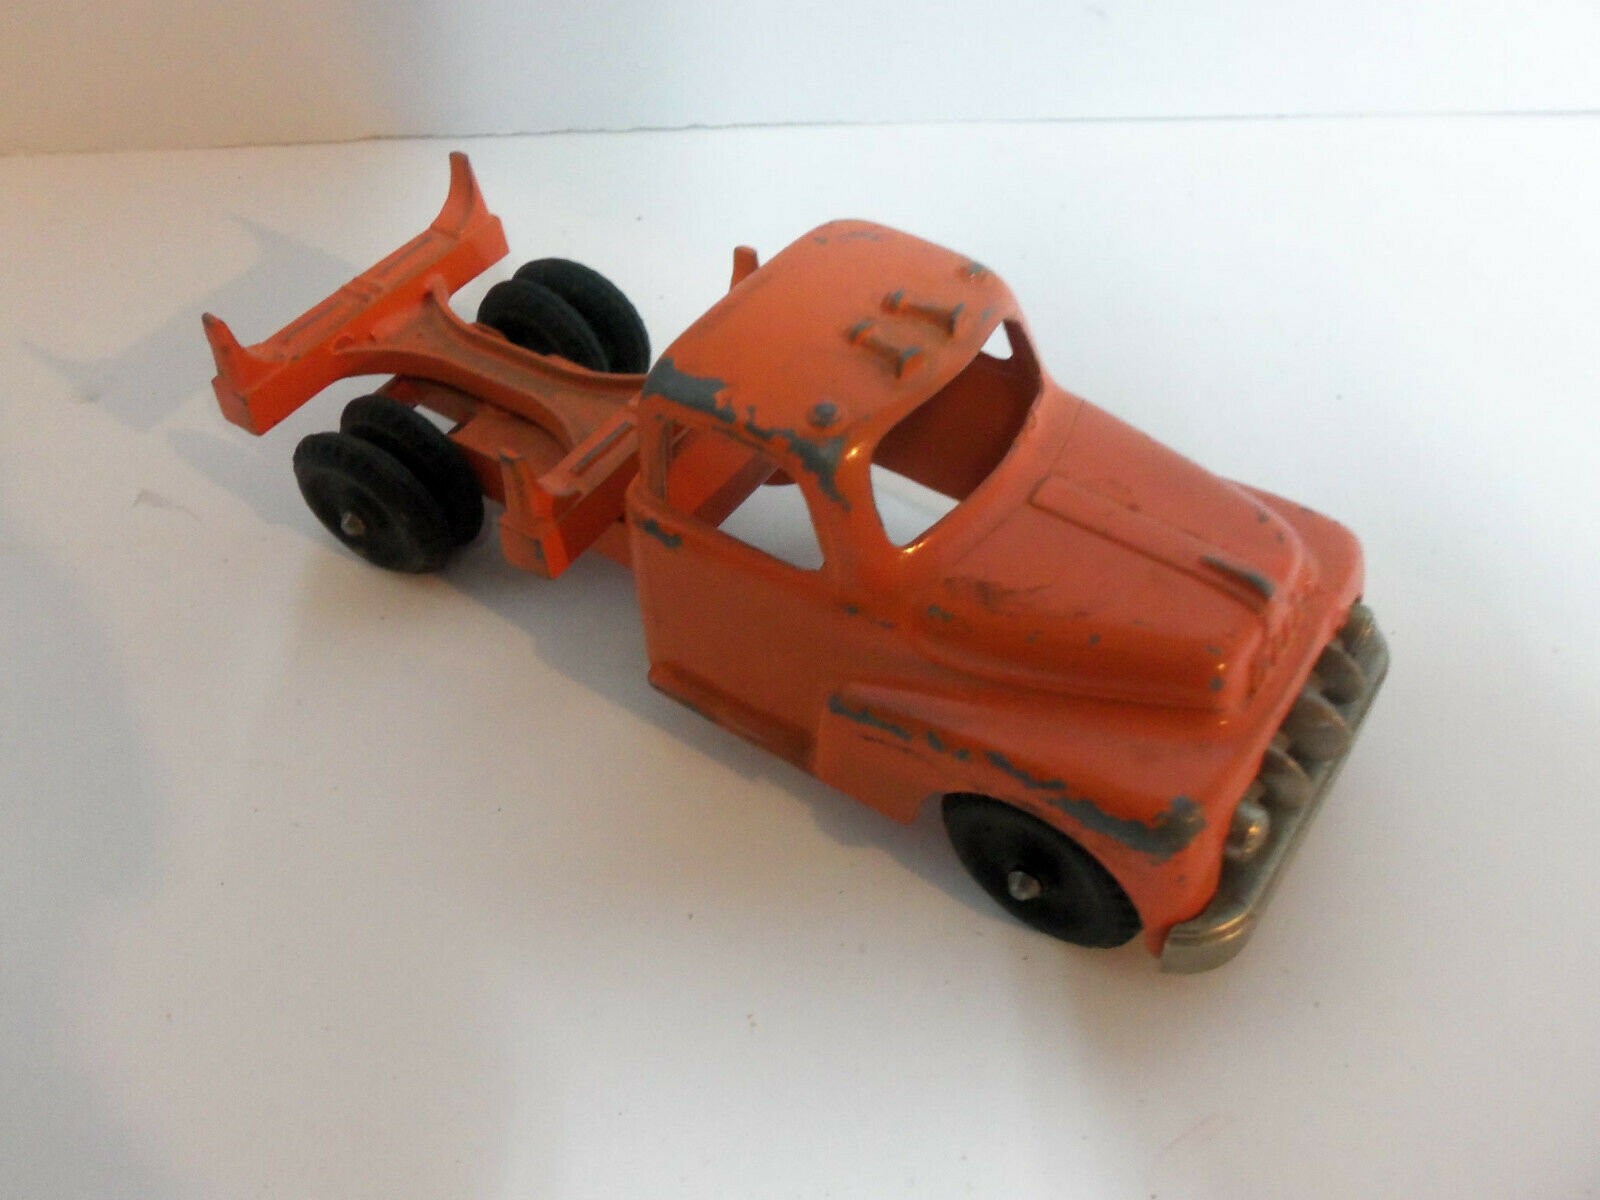 Vintage 1950s Hubley Kiddie Toy Pressed Steel orange Log Logging Truck NO RUST